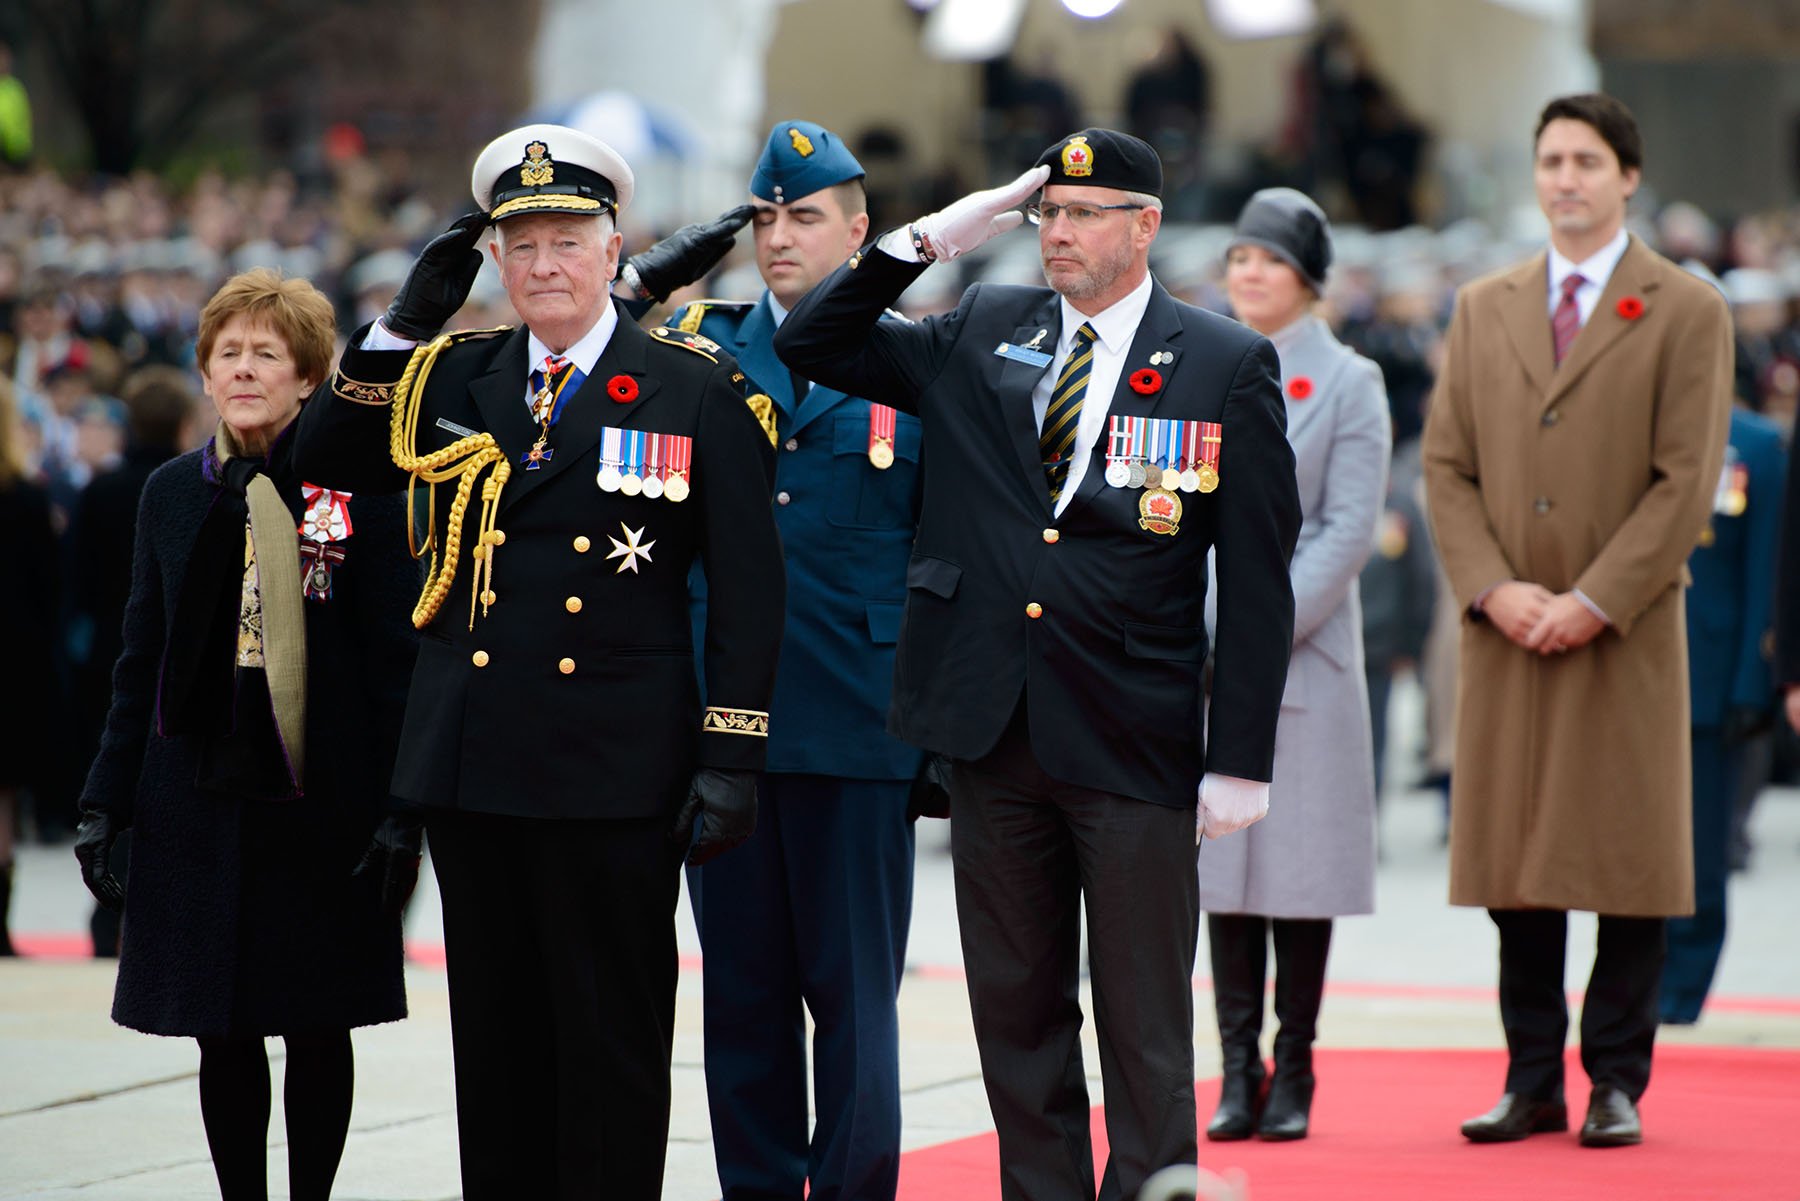 Governor General and Commander-in-Chief of Canada David Johnston salutes at the National War Memorial in Ottawa, Ontario, on Remembrance Day 2015. He is accompanied by Mrs. Sharon Johnston; a member of the Royal Canadian Air Force with a Canadian Armed Forces veteran; and Prime Minister Justin Trudeau and Sophie Grégoire-Trudeau. PHOTO: Master Corporal Daniel Merrell